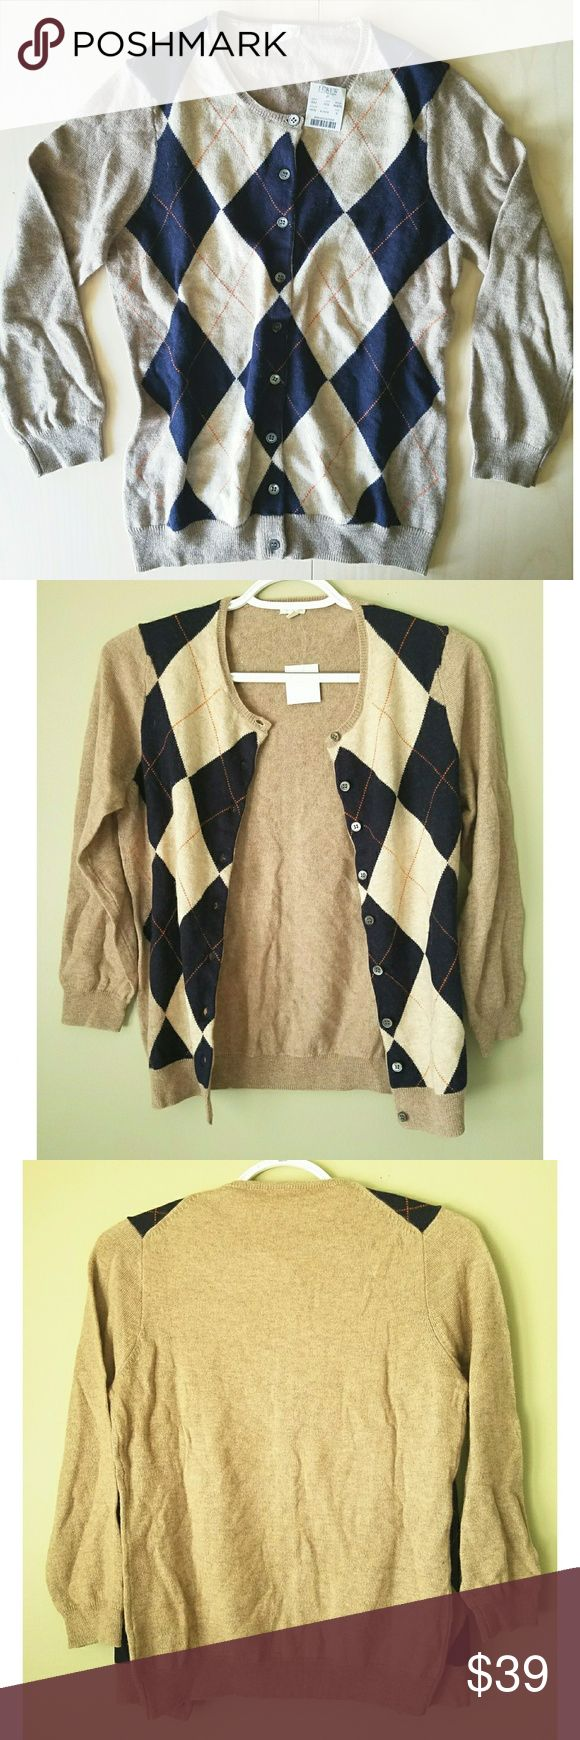 NWT J. Crew Factory Argyle Sweater Size Small Chic J. Crew Factory argyle sweater featuring brown, navy blue, and orange colors. Perfect for fall! I pictured it open and closed as it can also be worn as a cardigan. Pair with a plain white tee or navy blue tee with jeans and canvas shoes or heels to dress it up! Approximate measurements pictured in last photo to ensure accurate sizing! J. Crew Factory Tops Button Down Shirts